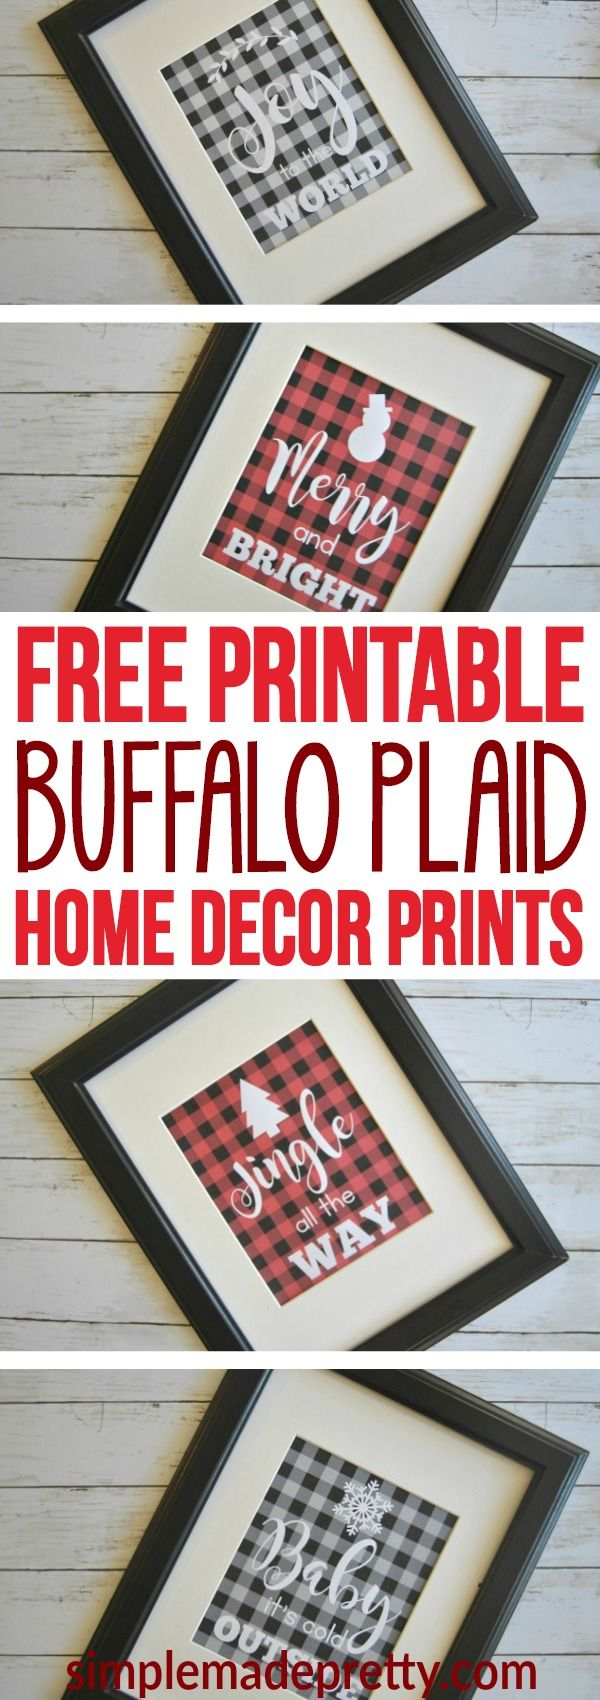 I love buffalo plaid and these DIY home decor prints were the perfect finishing touch to our Christmas decorations. Plaid home decor has been everywhere this holiday so I had mine printed as over-sized artwork (engineer prints at Staples). It was super cheap and easy ($3!) to make over sized art for the living room!  If you are on a budget, this is the perfect home decor DIY!  via @SMPblog